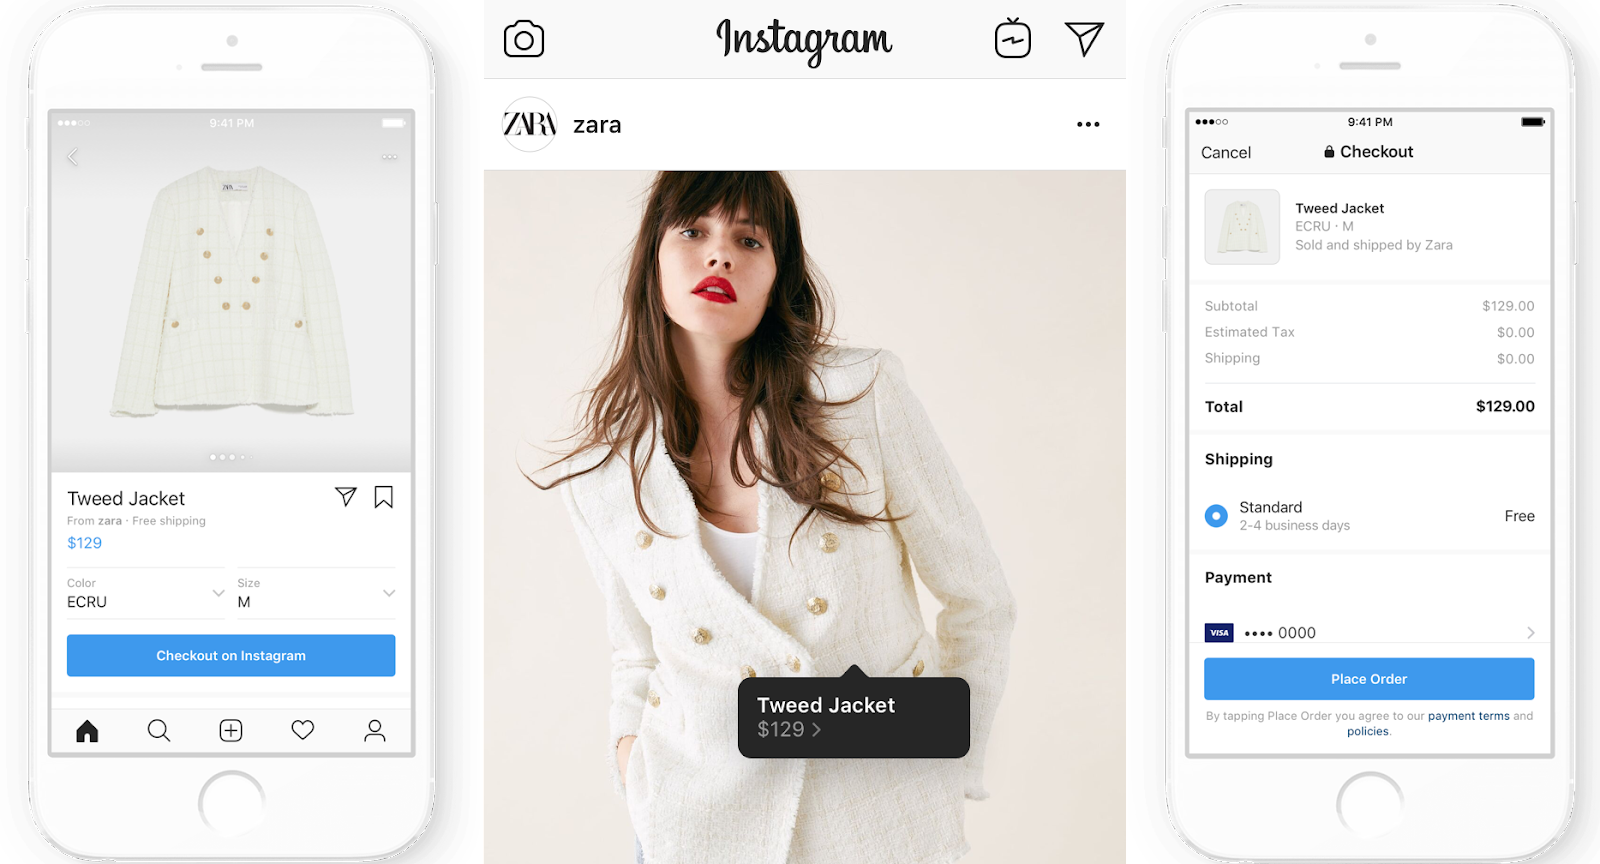 Instagram social commerce